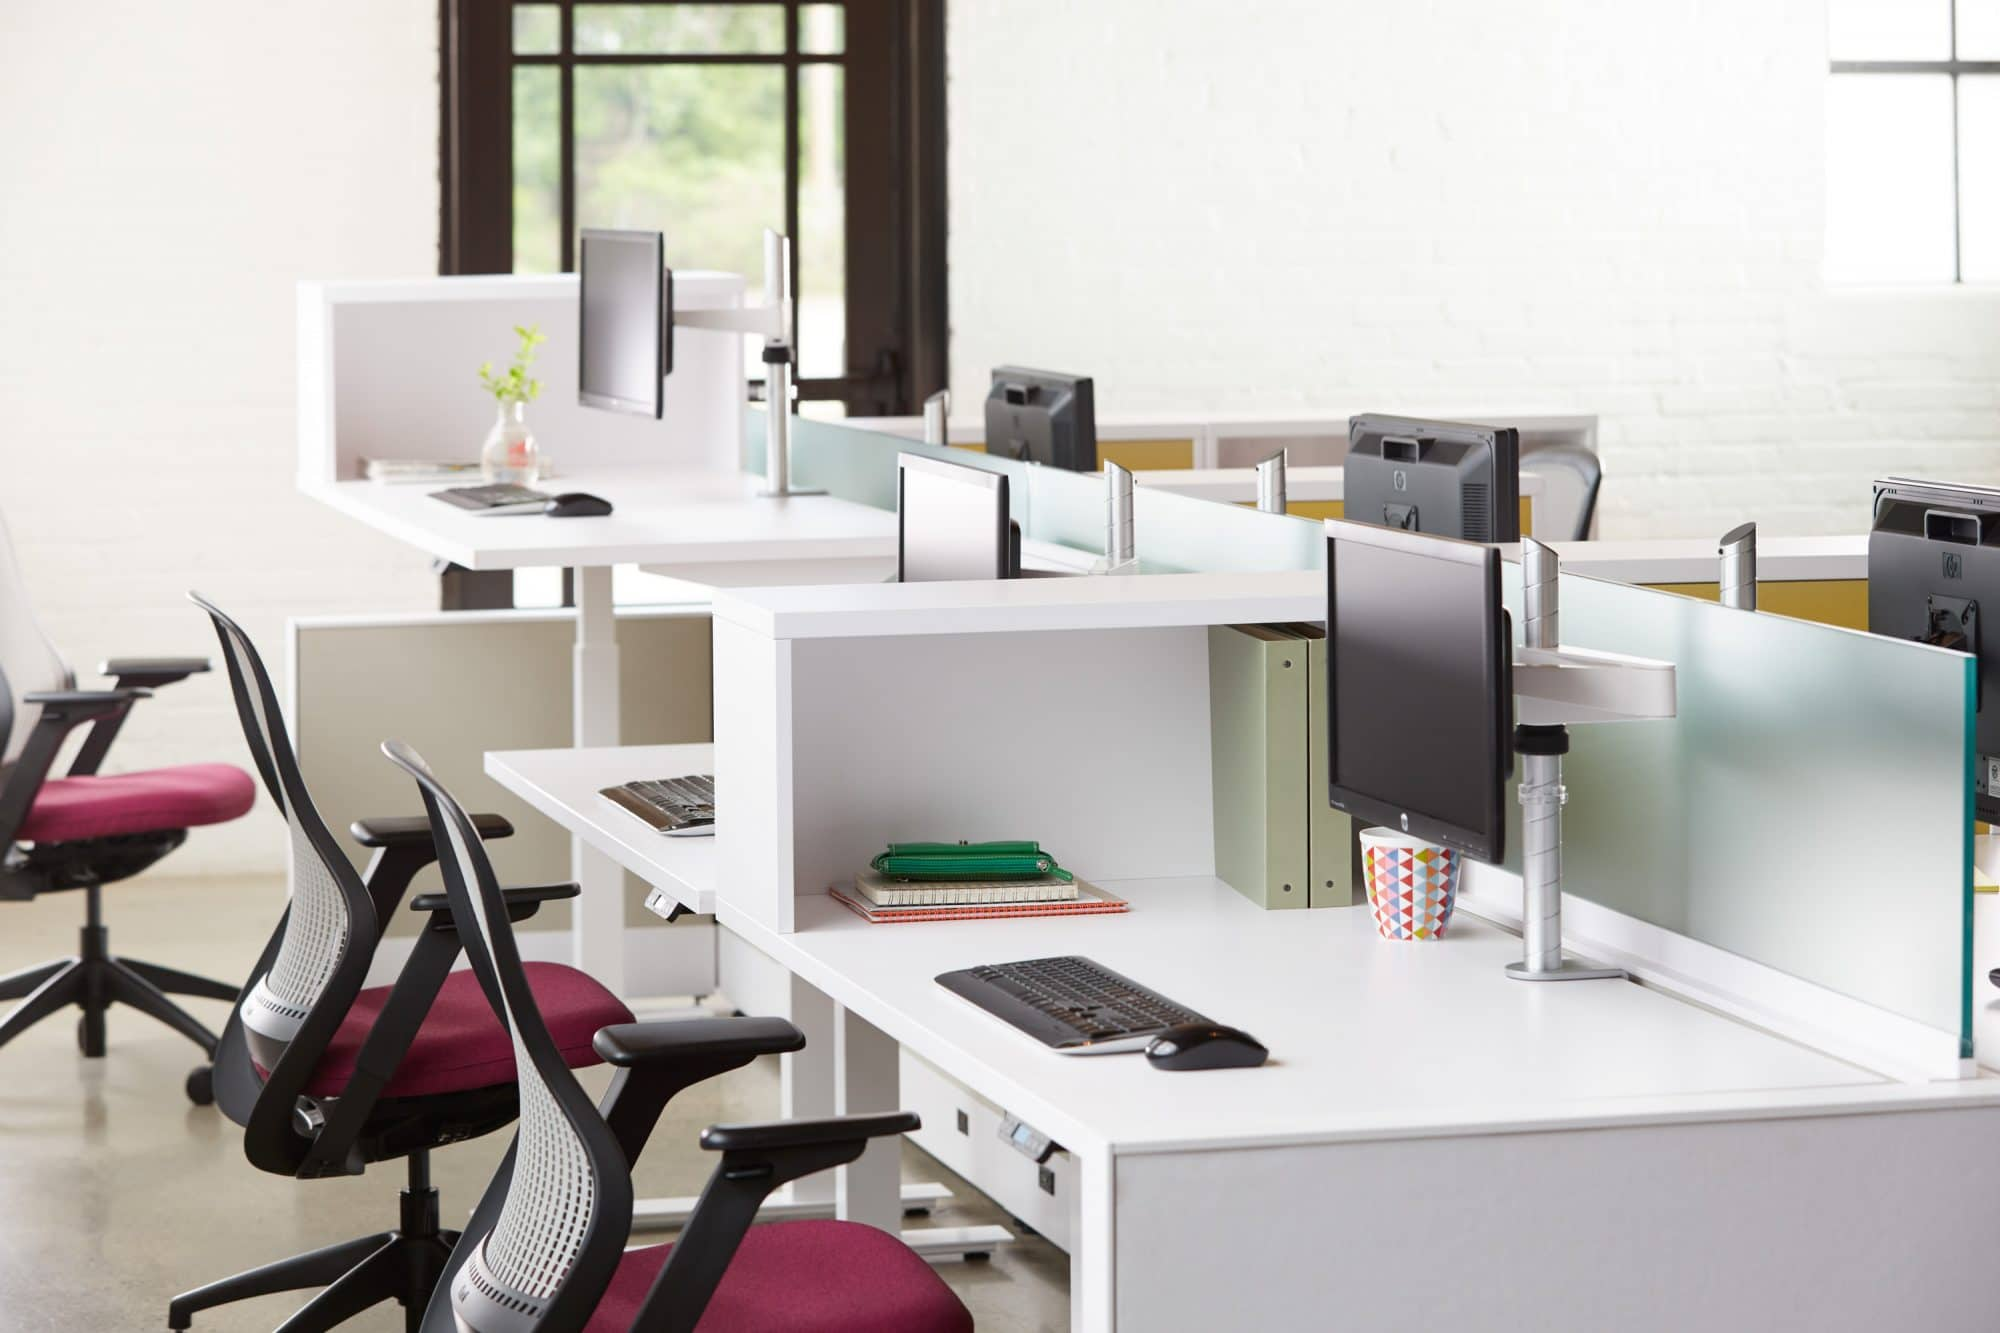 Project Management & Systems Furniture u2013 Commercial Interiors and Workspace Solutions